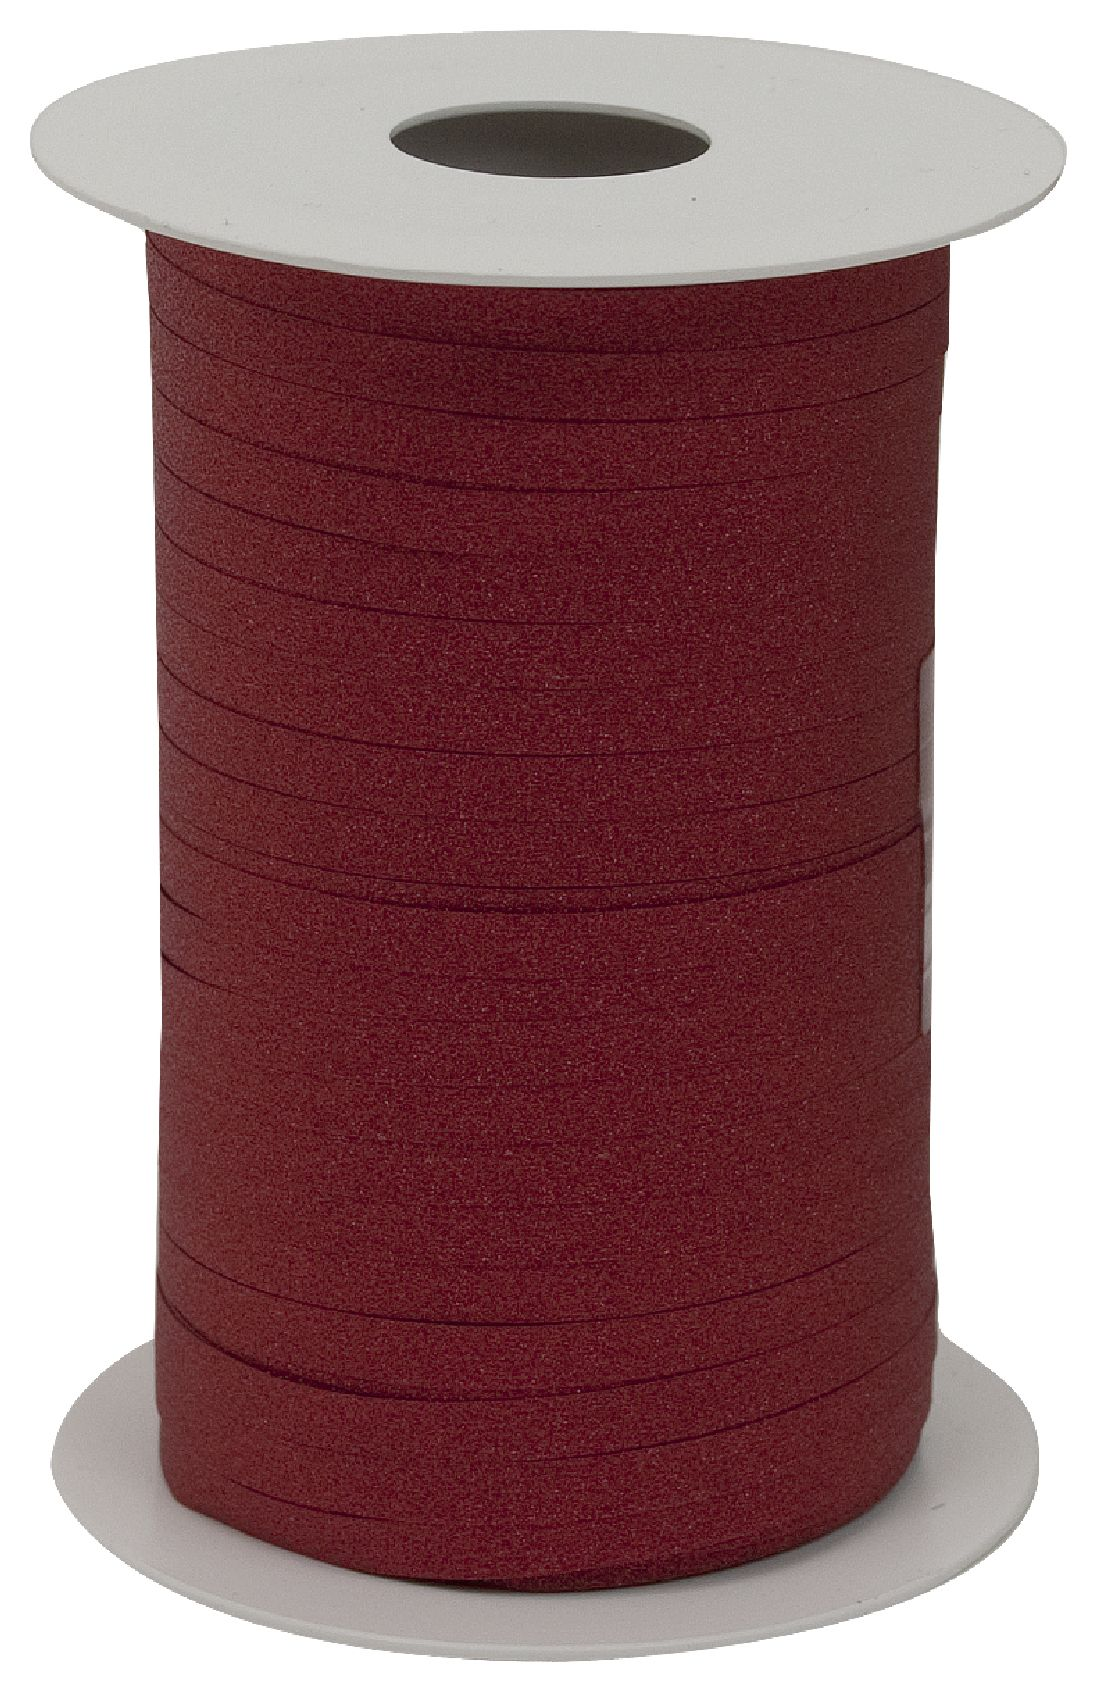 Kräuselband Glamour ROT 8146 20 Breite 5mm  Rolle=150Meter